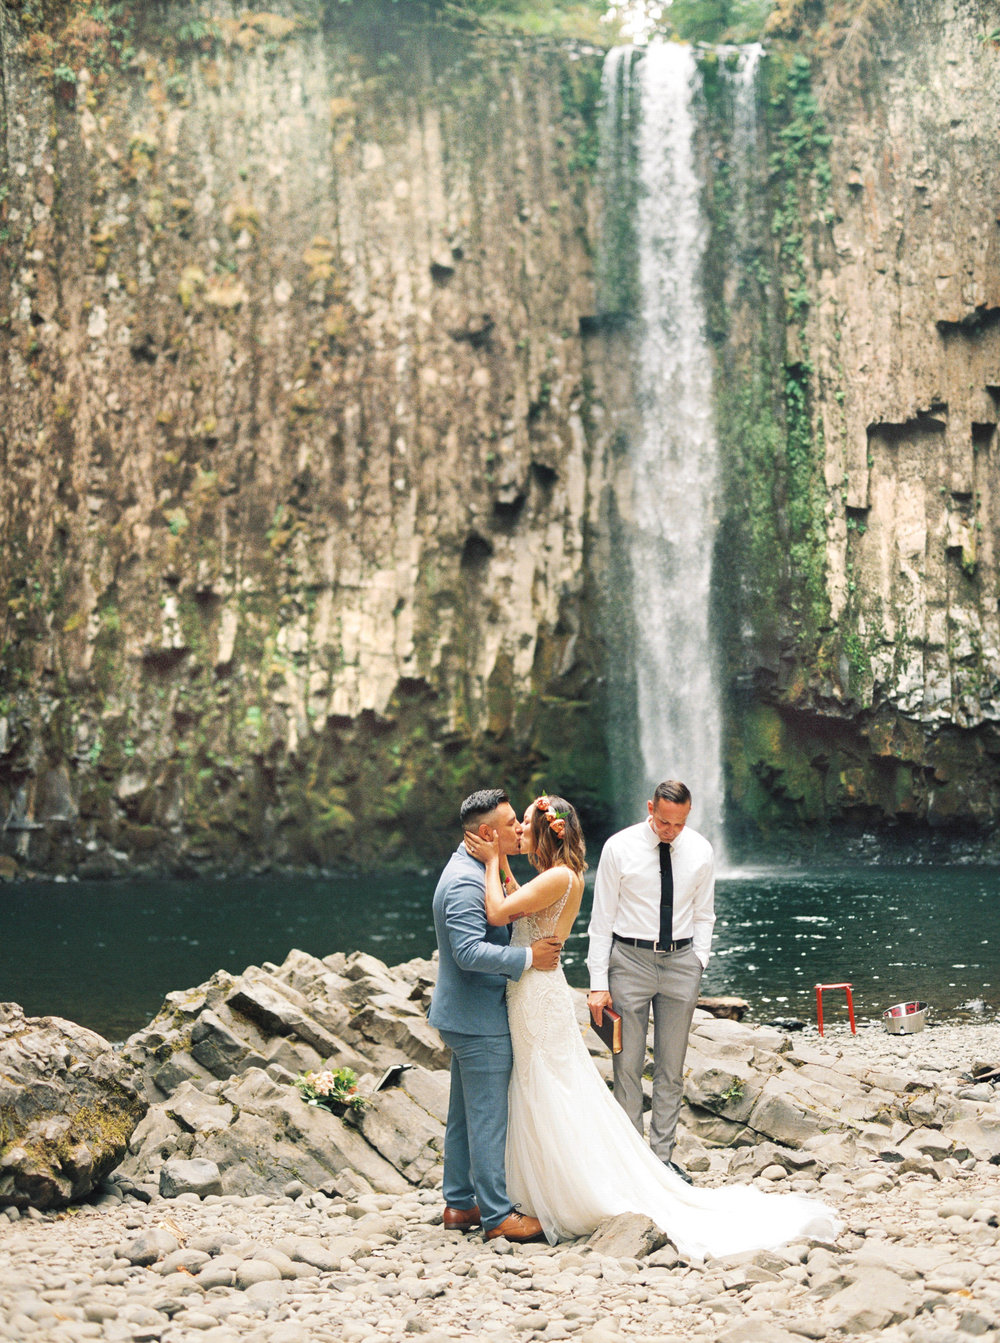 abiqua_falls_elopement_wedding_oregon_photographer_videographer_125.jpg